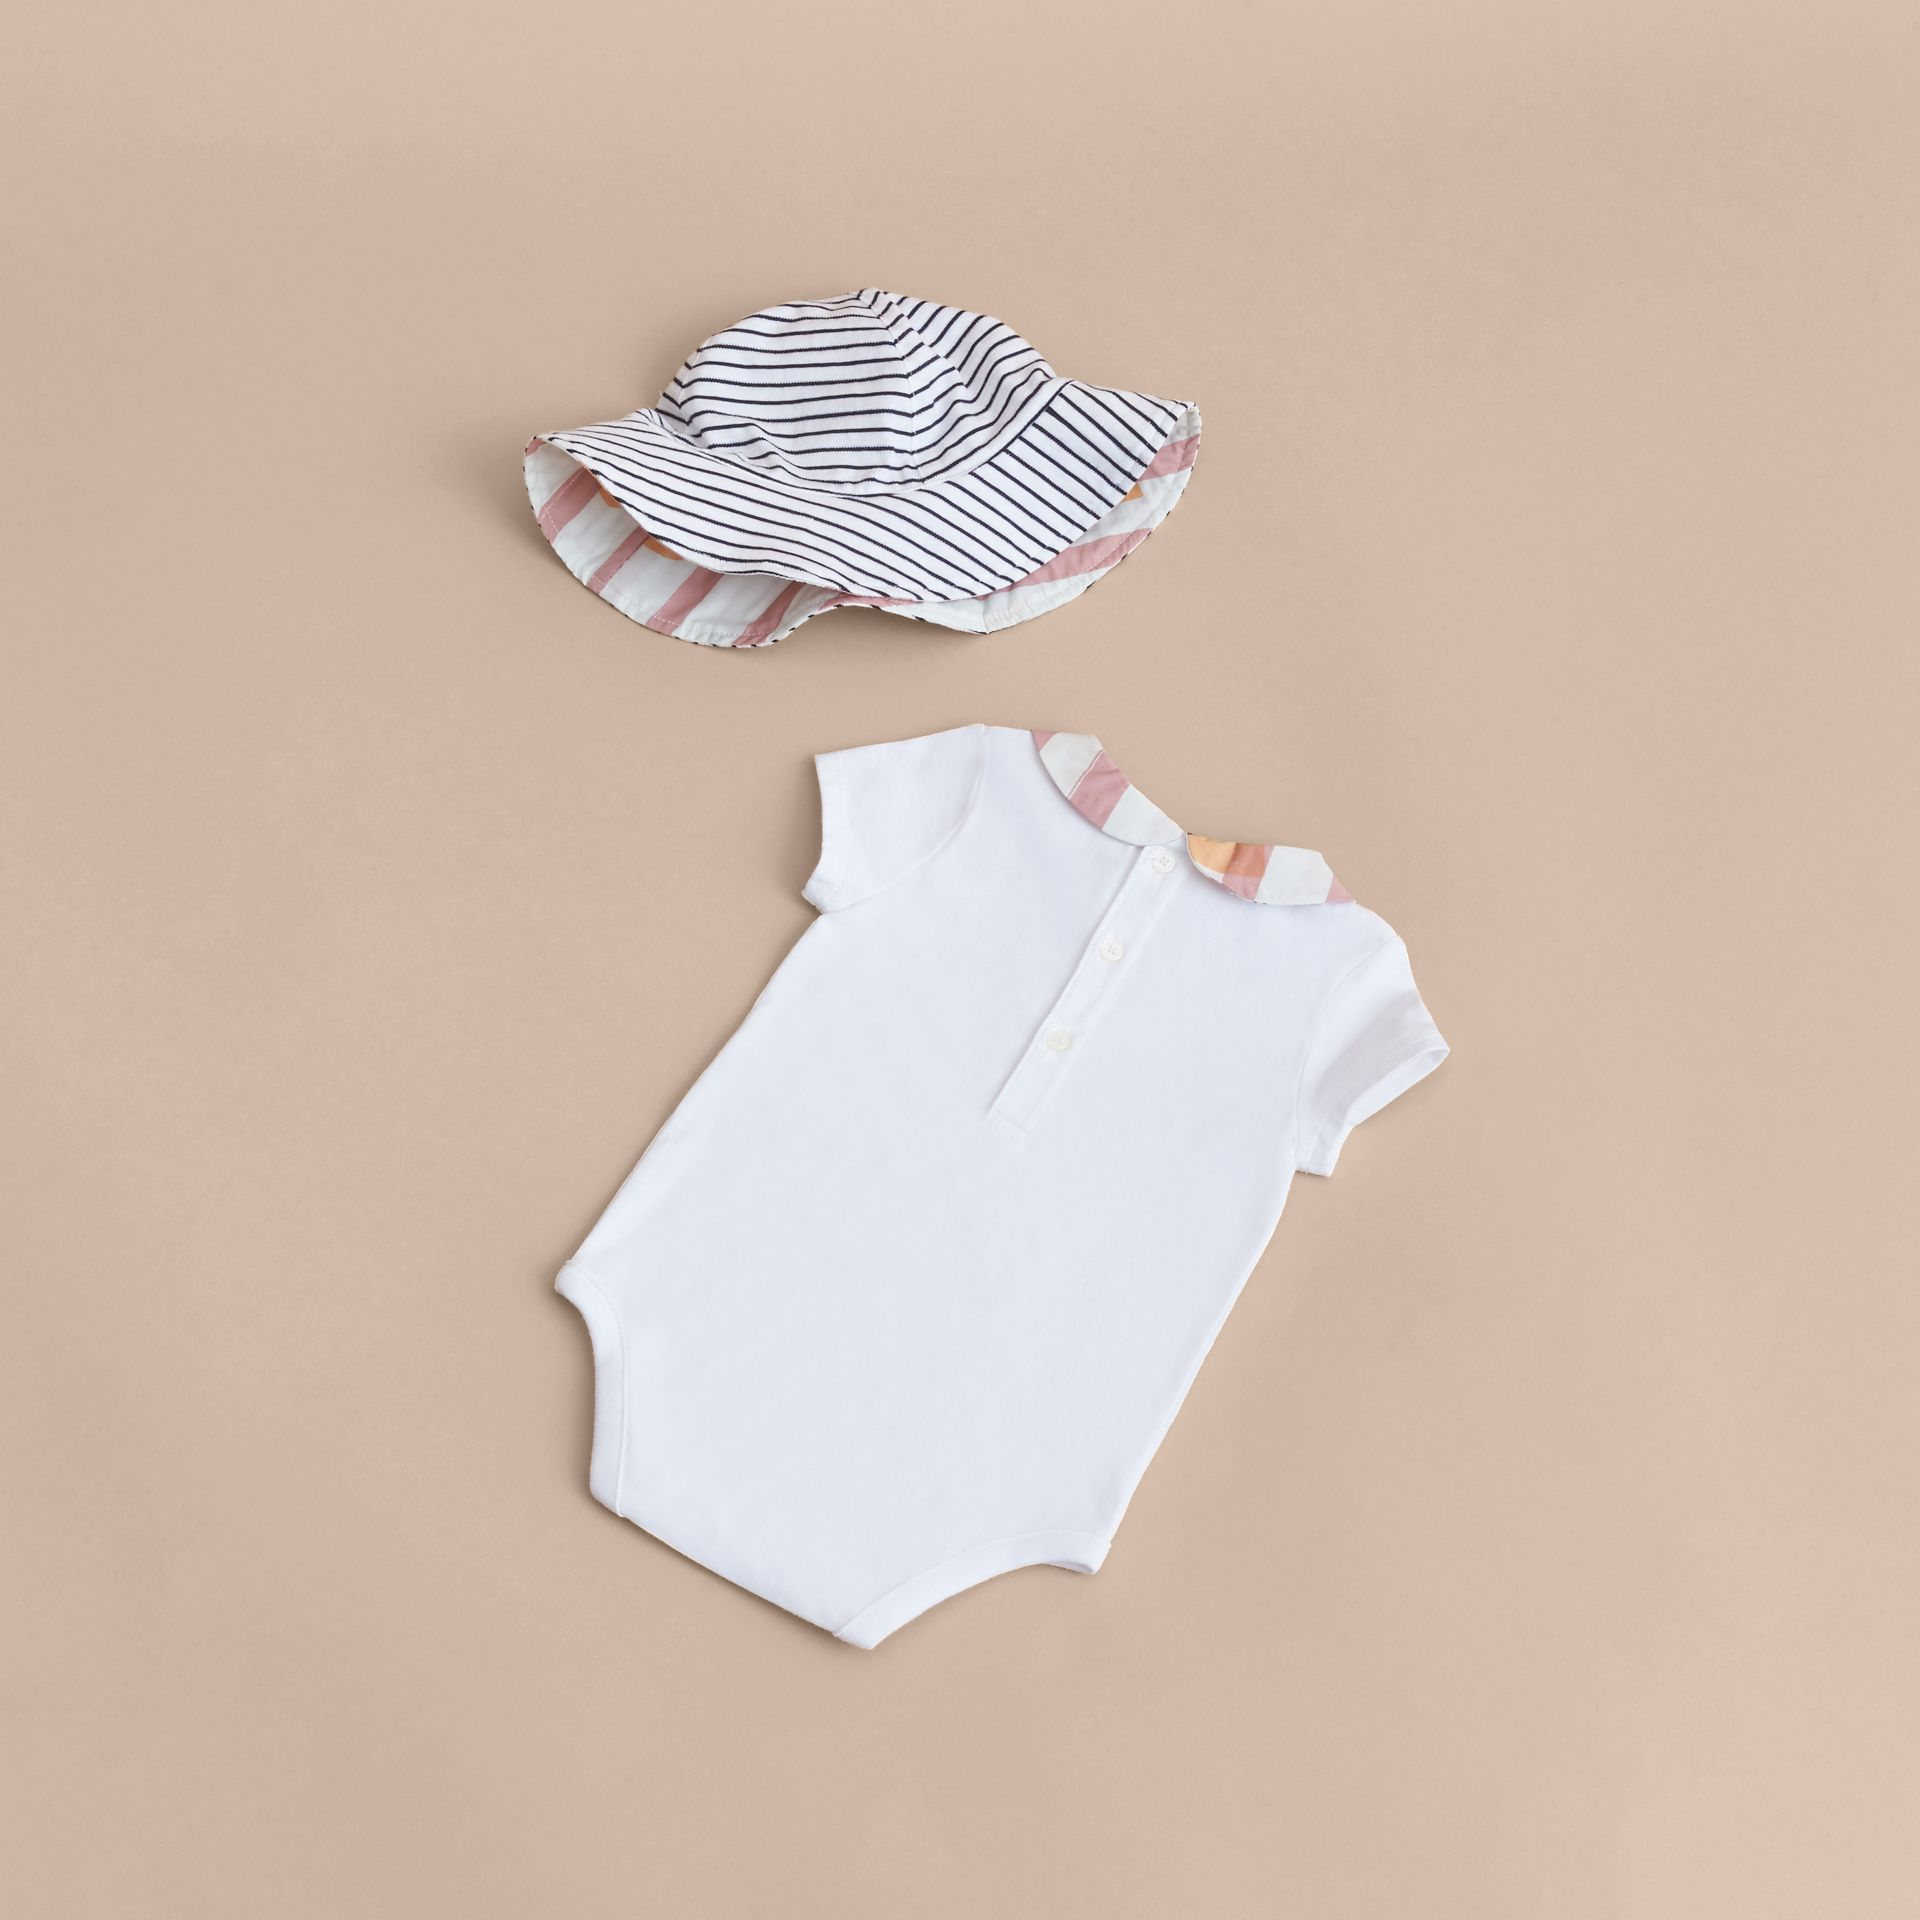 Hooked Heart Print Cotton Three-piece Baby Gift Set - gallery image 3